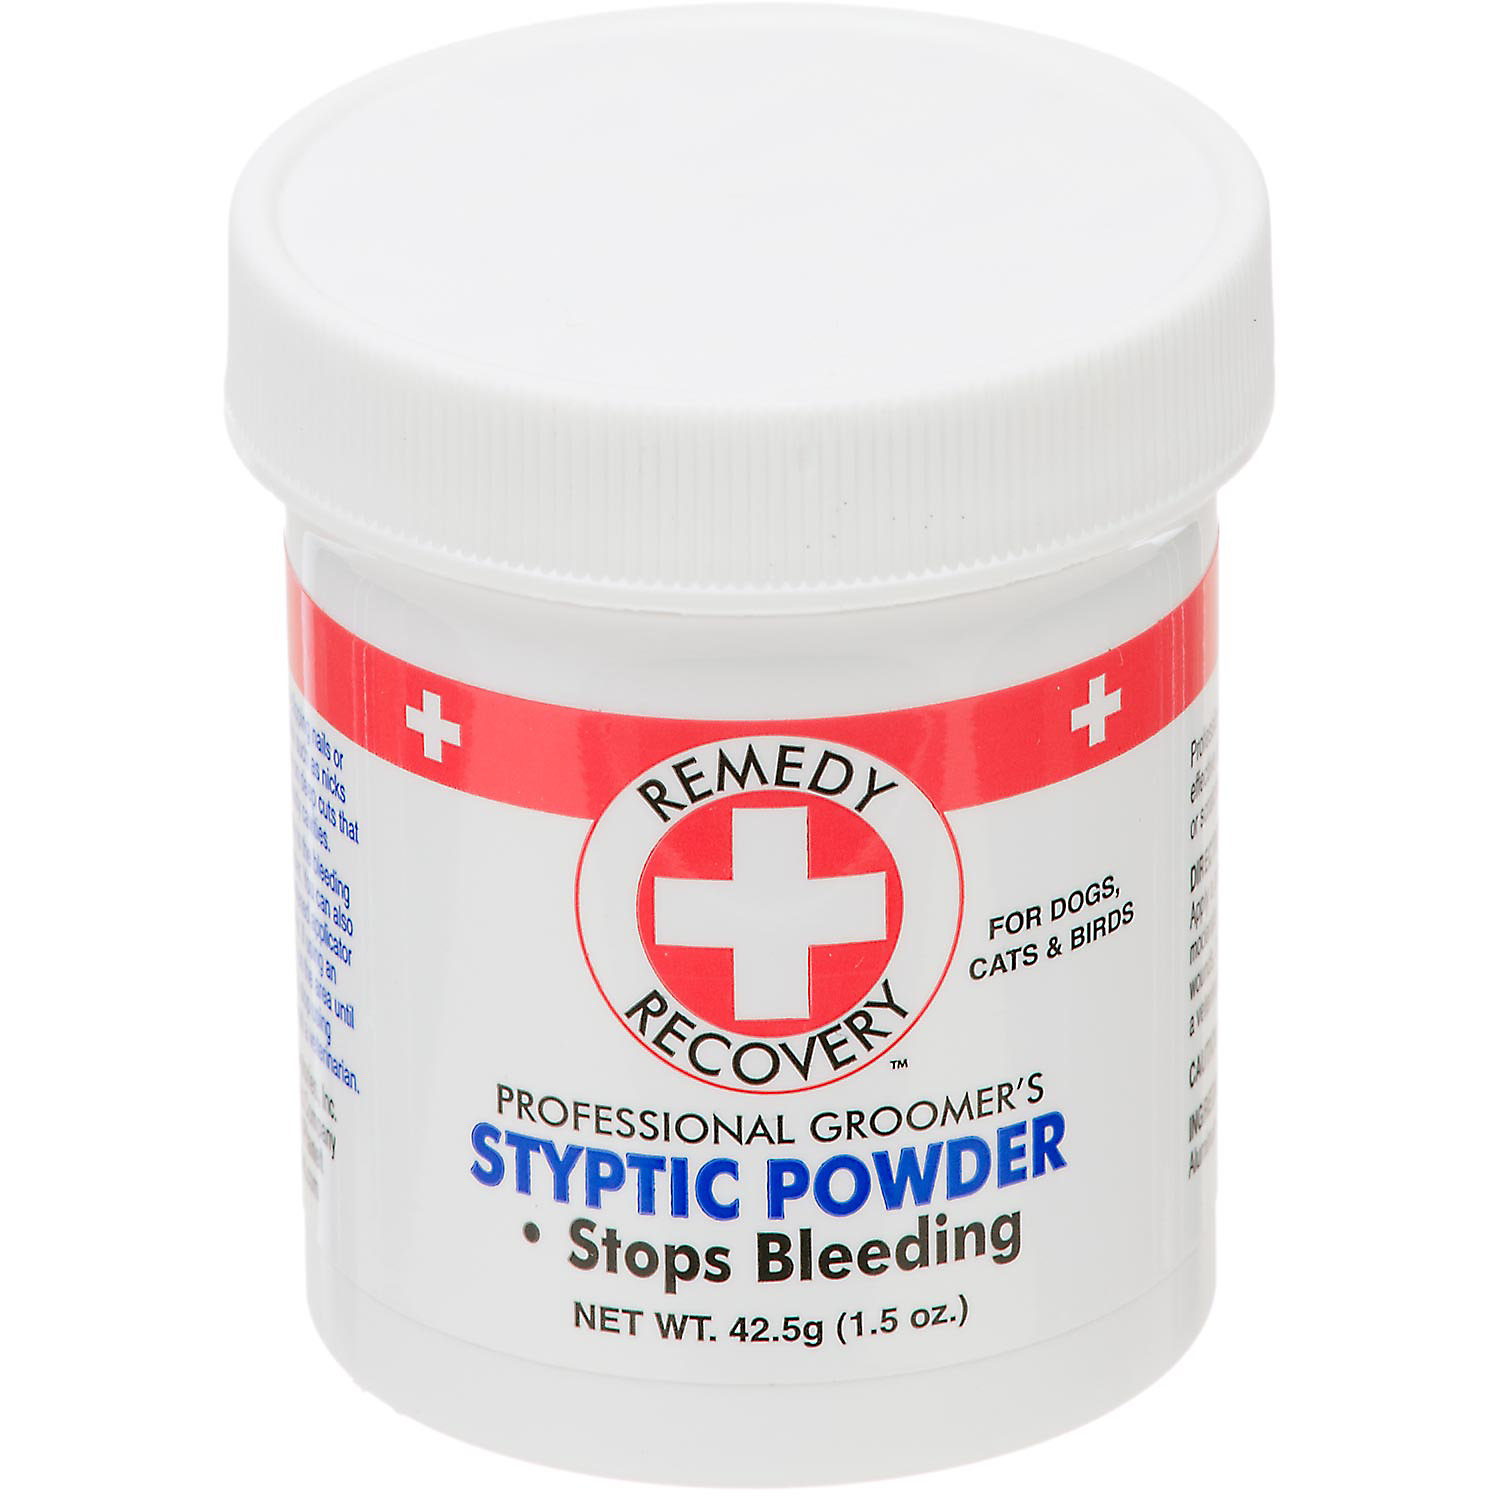 Remedyrecovery Styptic Powder